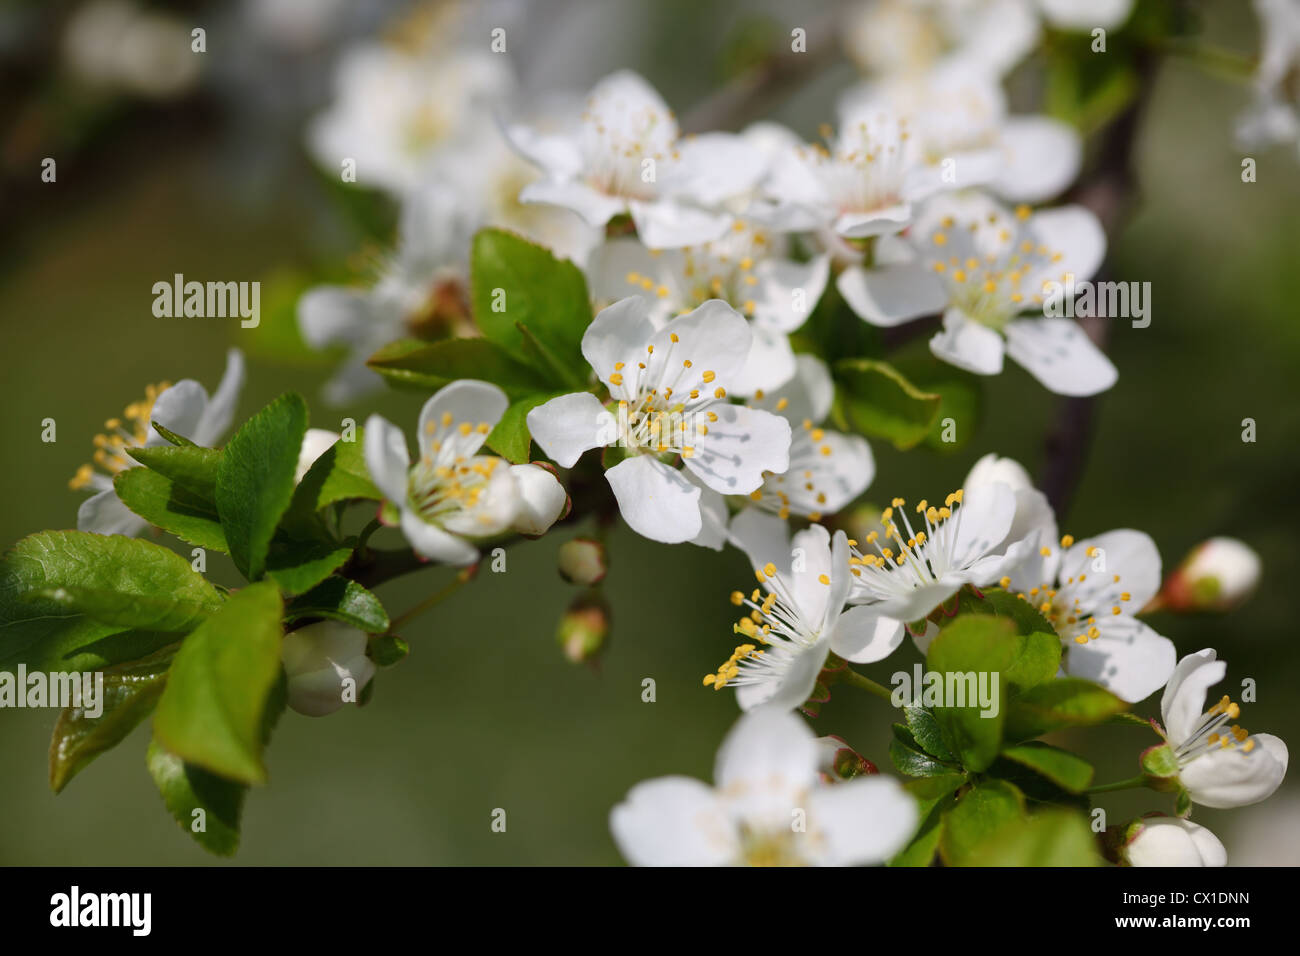 White plum flower in close up stock photo 50434545 alamy white plum flower in close up mightylinksfo